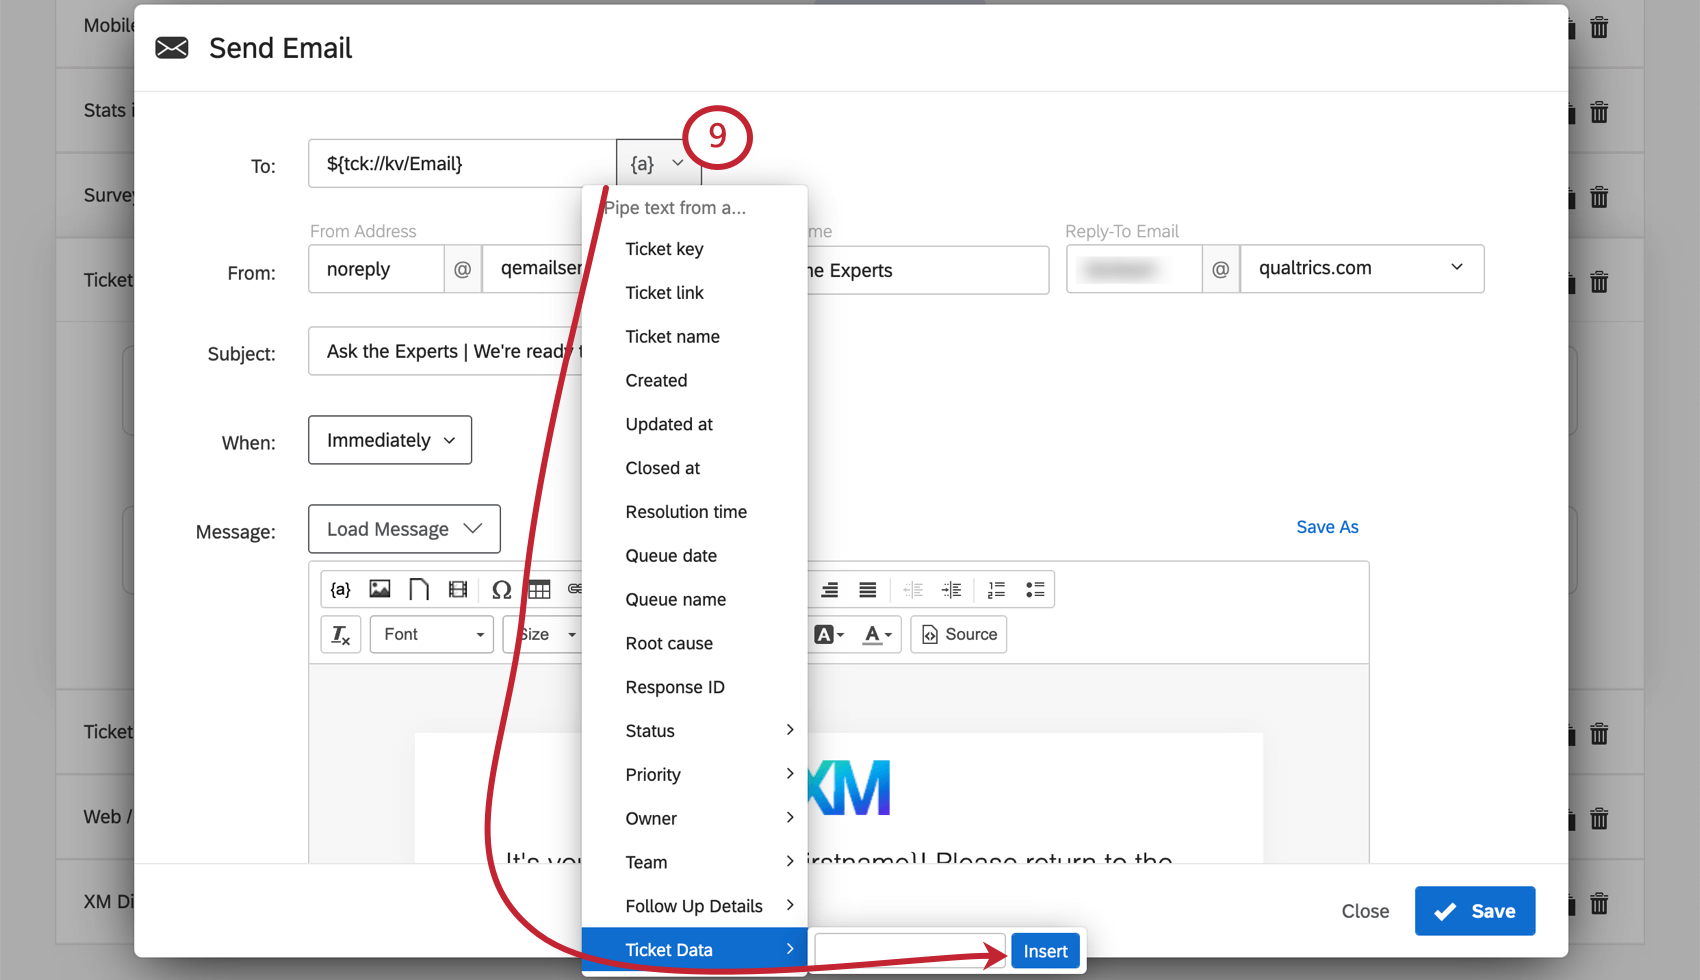 Image of Piped Text menu expanded